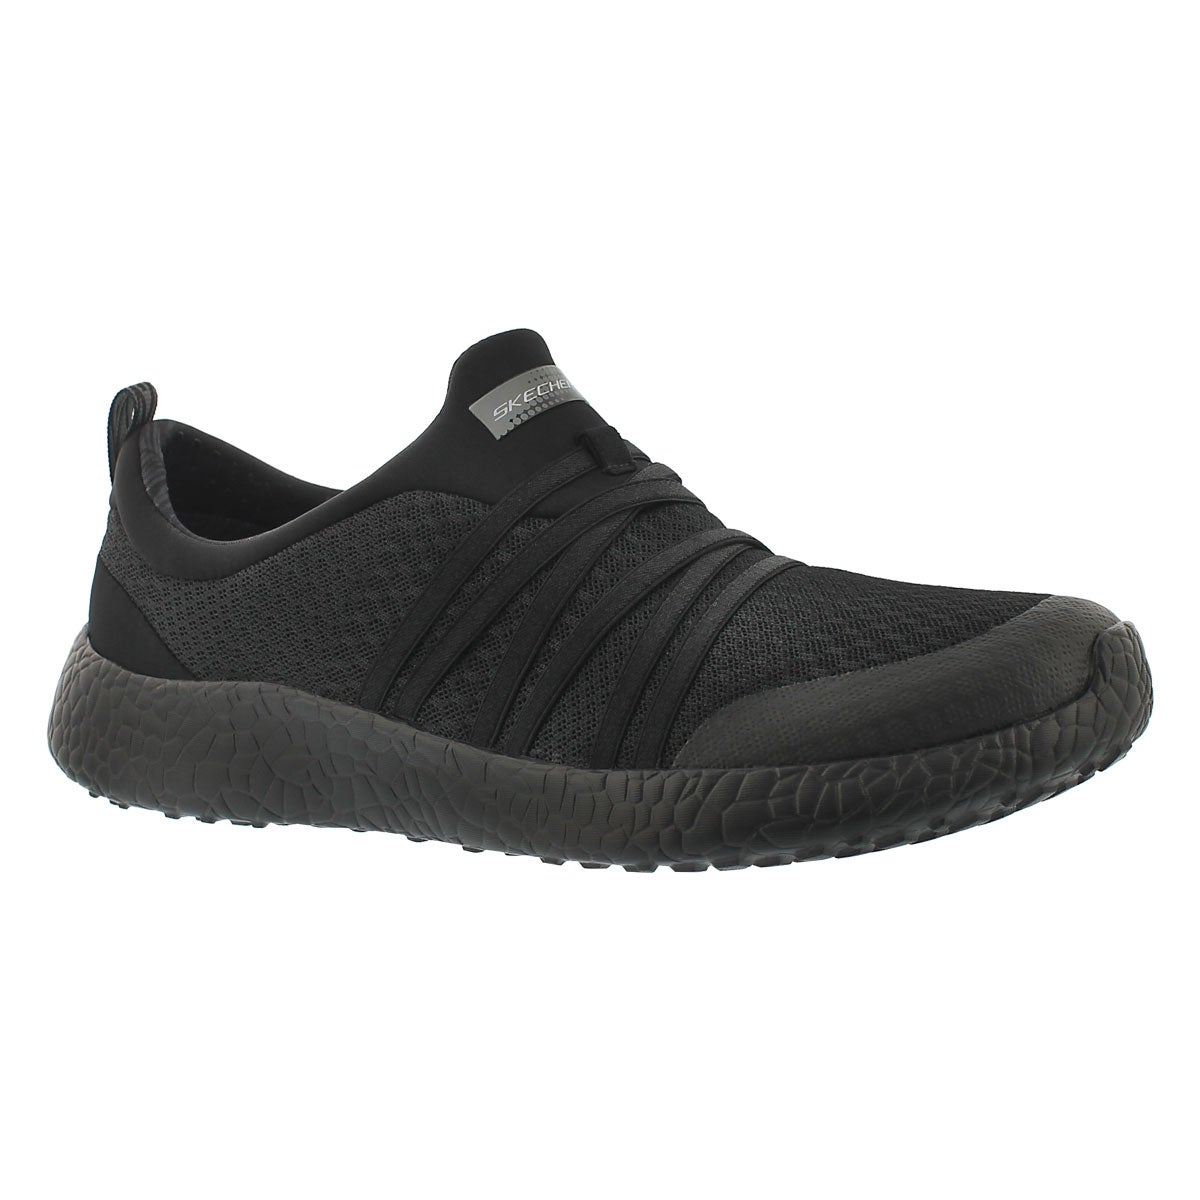 Women's VERY DARING black slip on sneakers